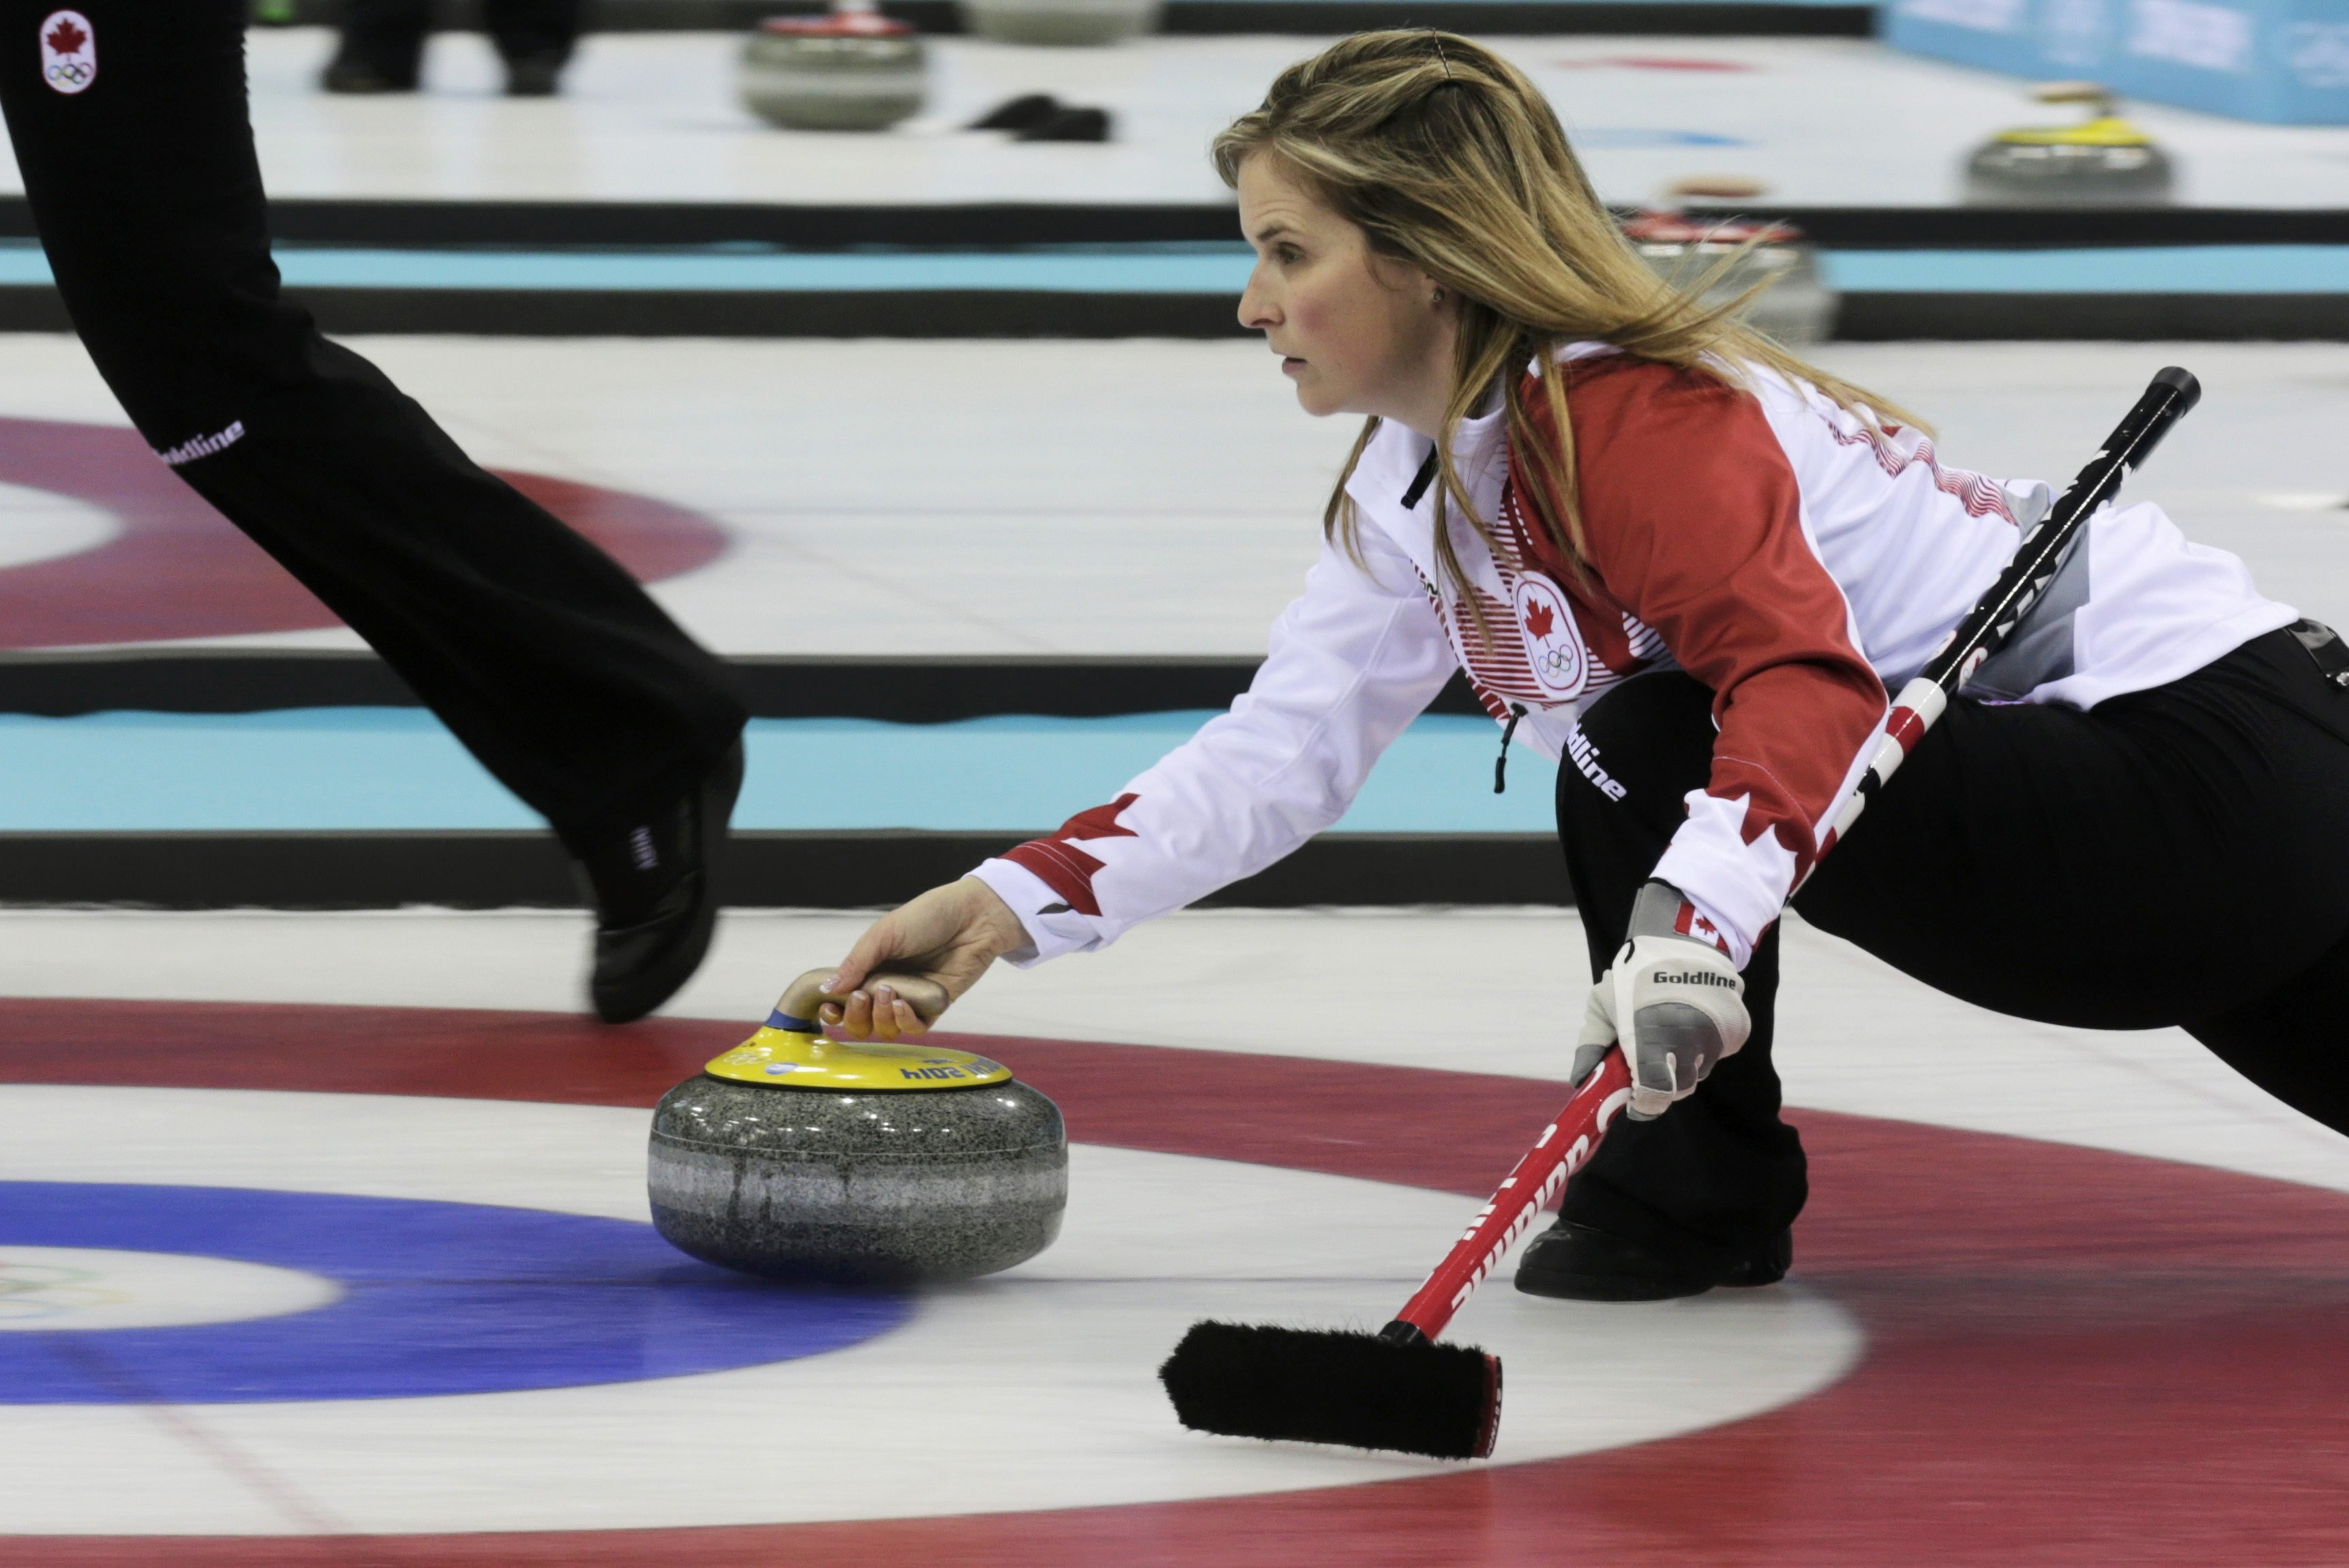 Canada's skip Jennifer Jones delivers the stone in their women's curling round robin game against Sweden at the Sochi 2014 Winter Olympic Games